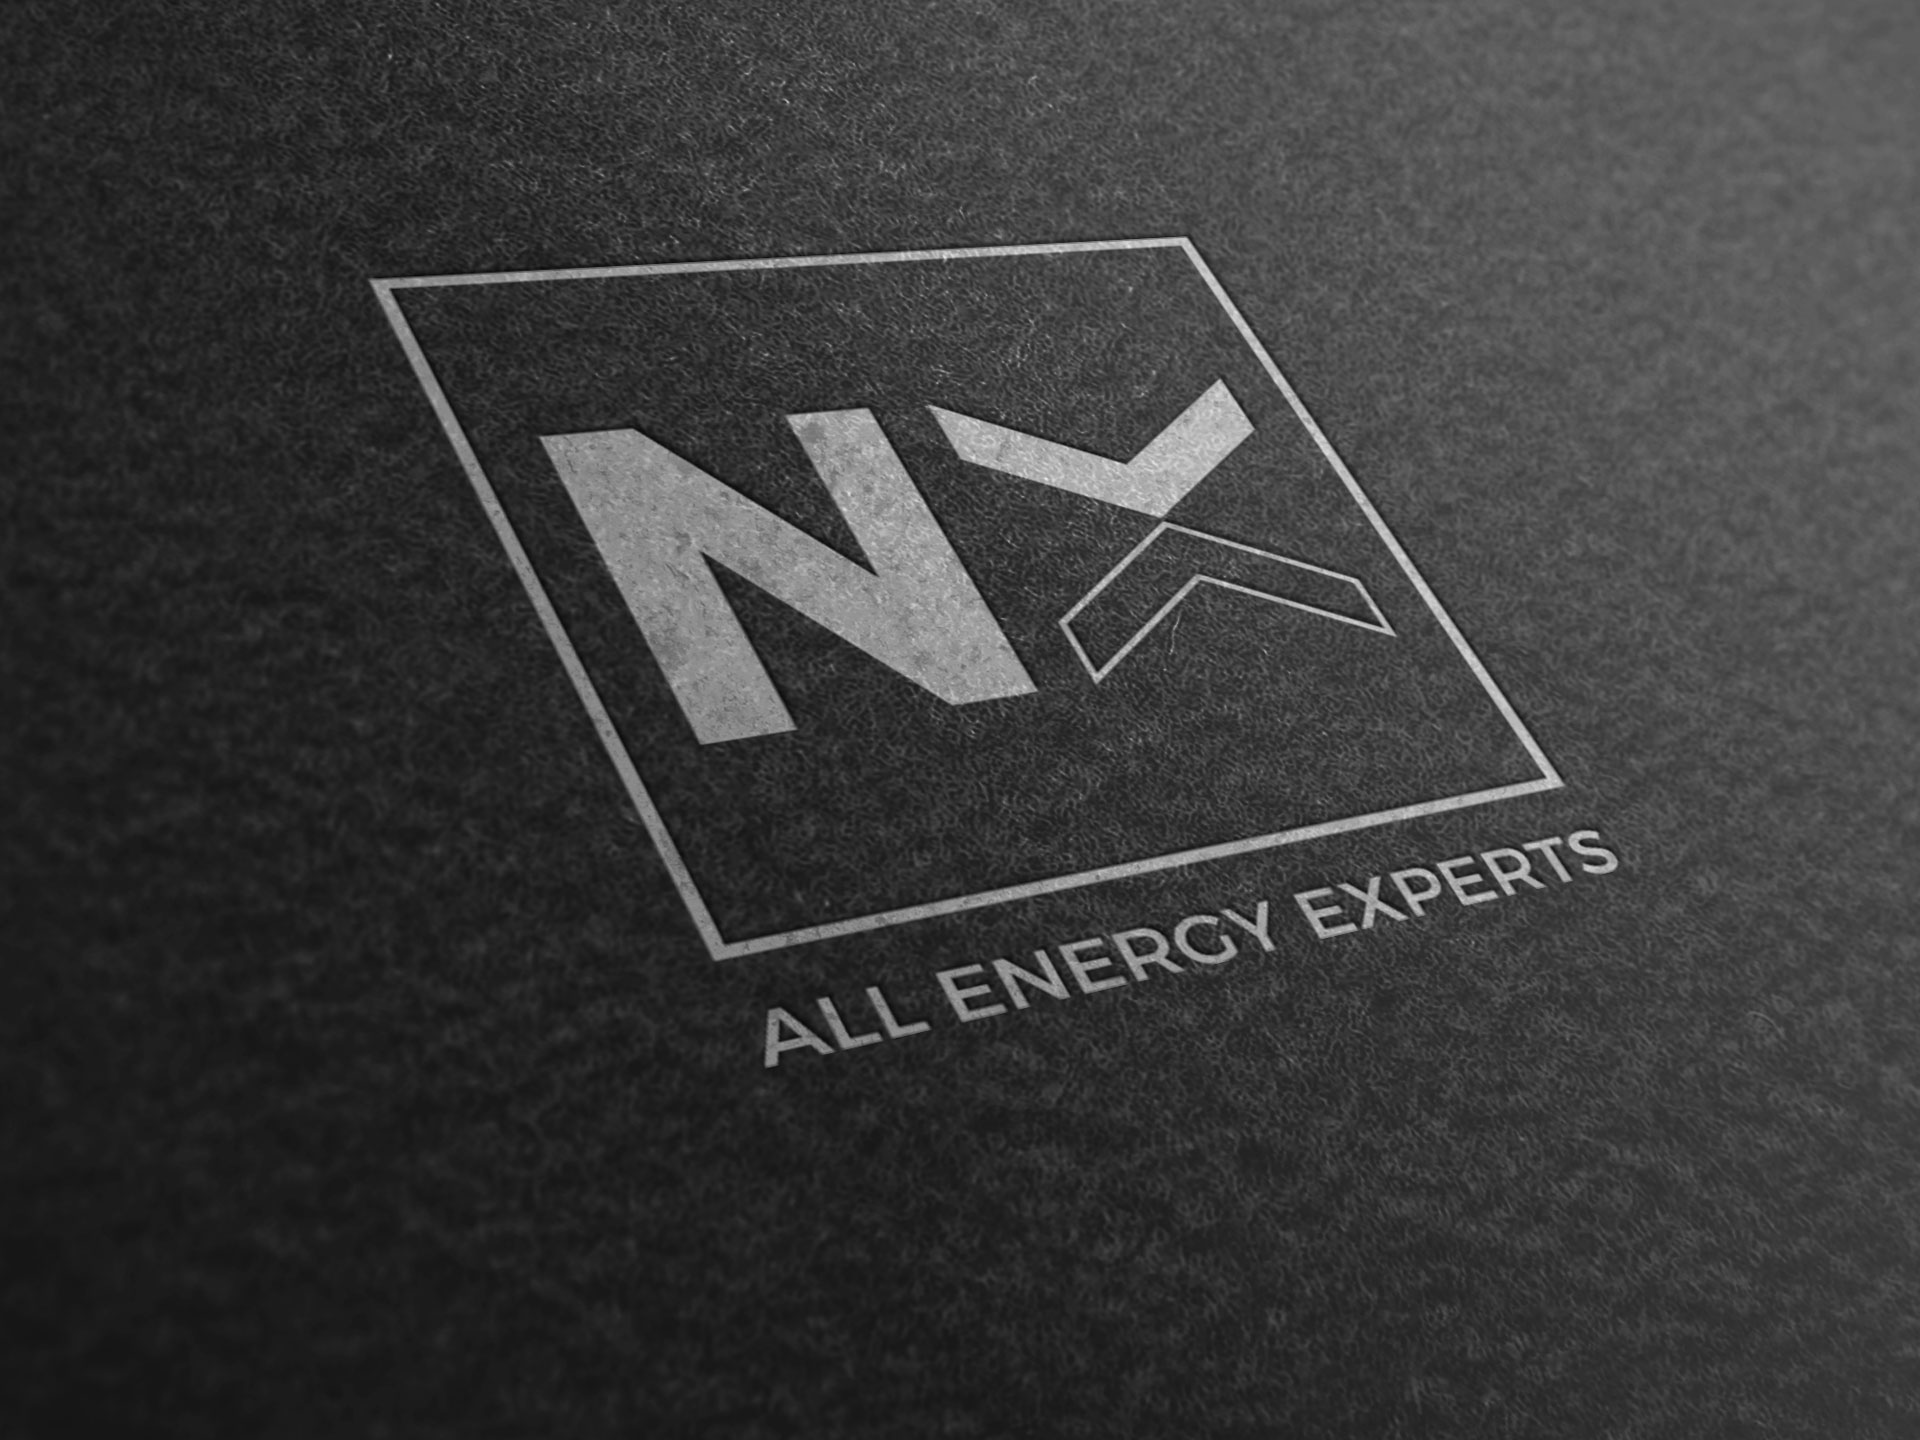 All Energy Experts Logoreferenz